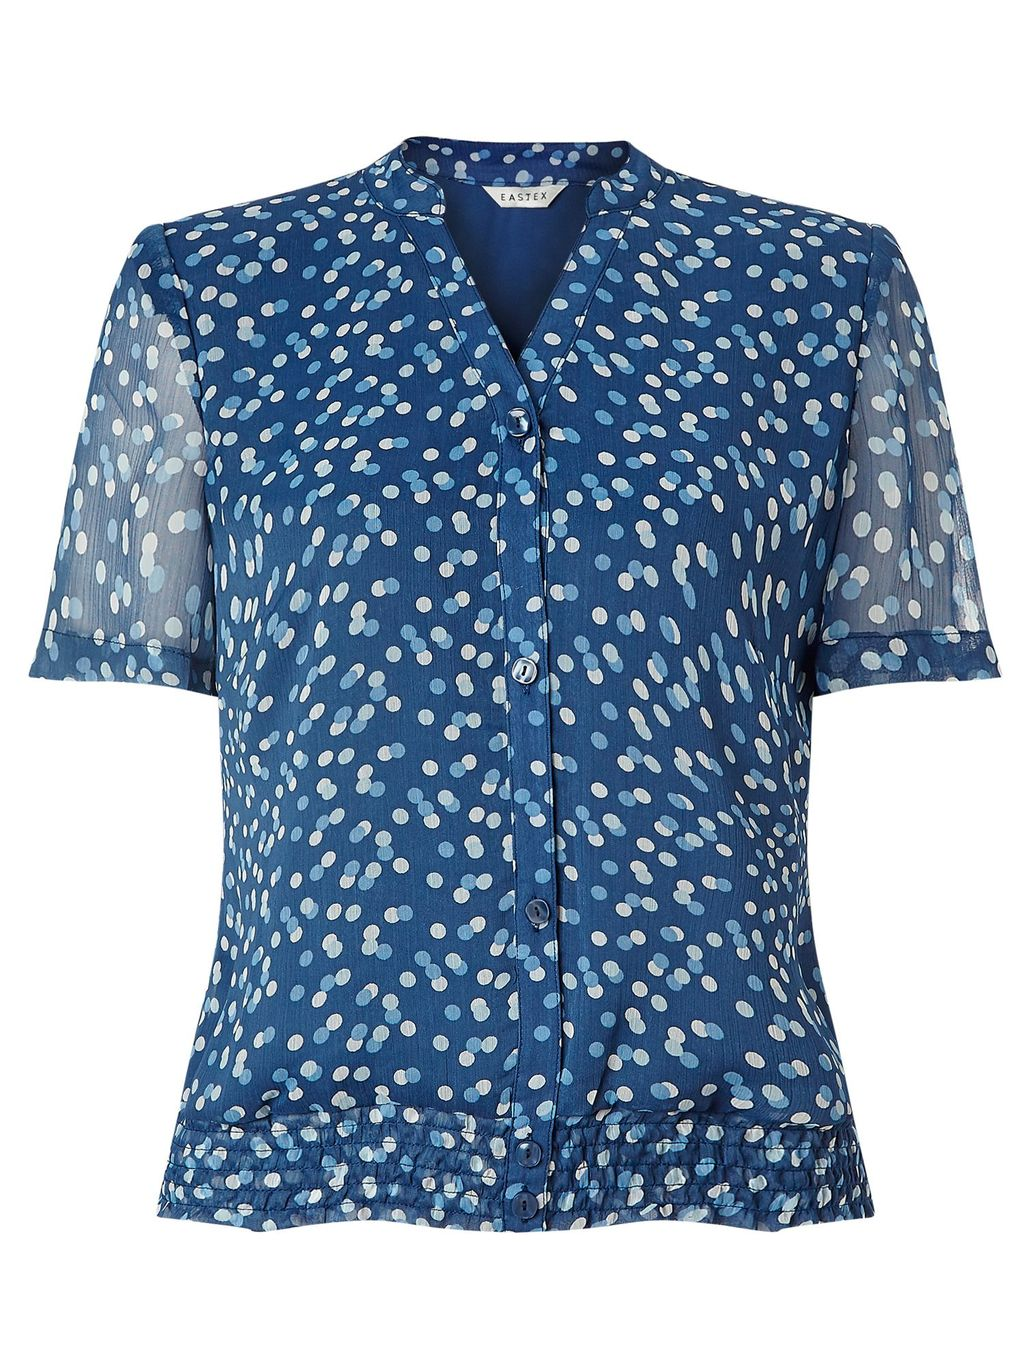 Spot Shirred Hem Blouse, Multi Coloured - style: blouse; predominant colour: royal blue; occasions: work, creative work; length: standard; neckline: collarstand & mandarin with v-neck; fibres: polyester/polyamide - 100%; fit: body skimming; sleeve length: short sleeve; sleeve style: standard; texture group: sheer fabrics/chiffon/organza etc.; pattern type: fabric; pattern: patterned/print; pattern size: big & busy (top); multicoloured: multicoloured; season: s/s 2016; wardrobe: highlight